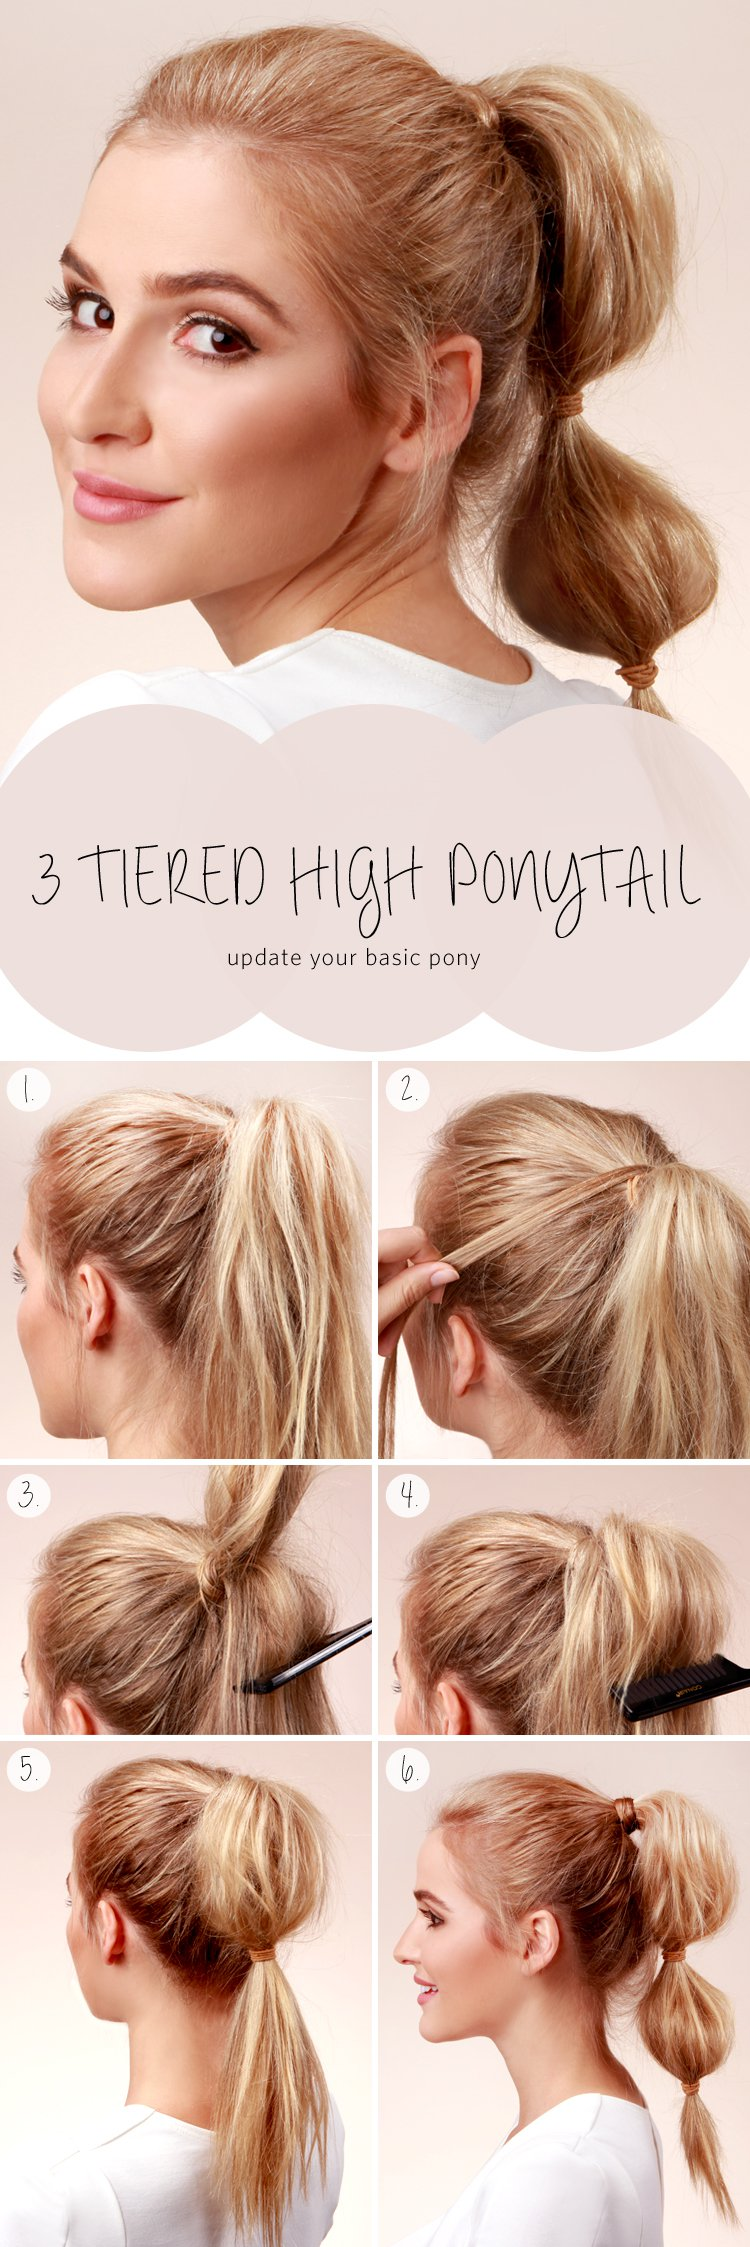 3-Tiered High Ponytail